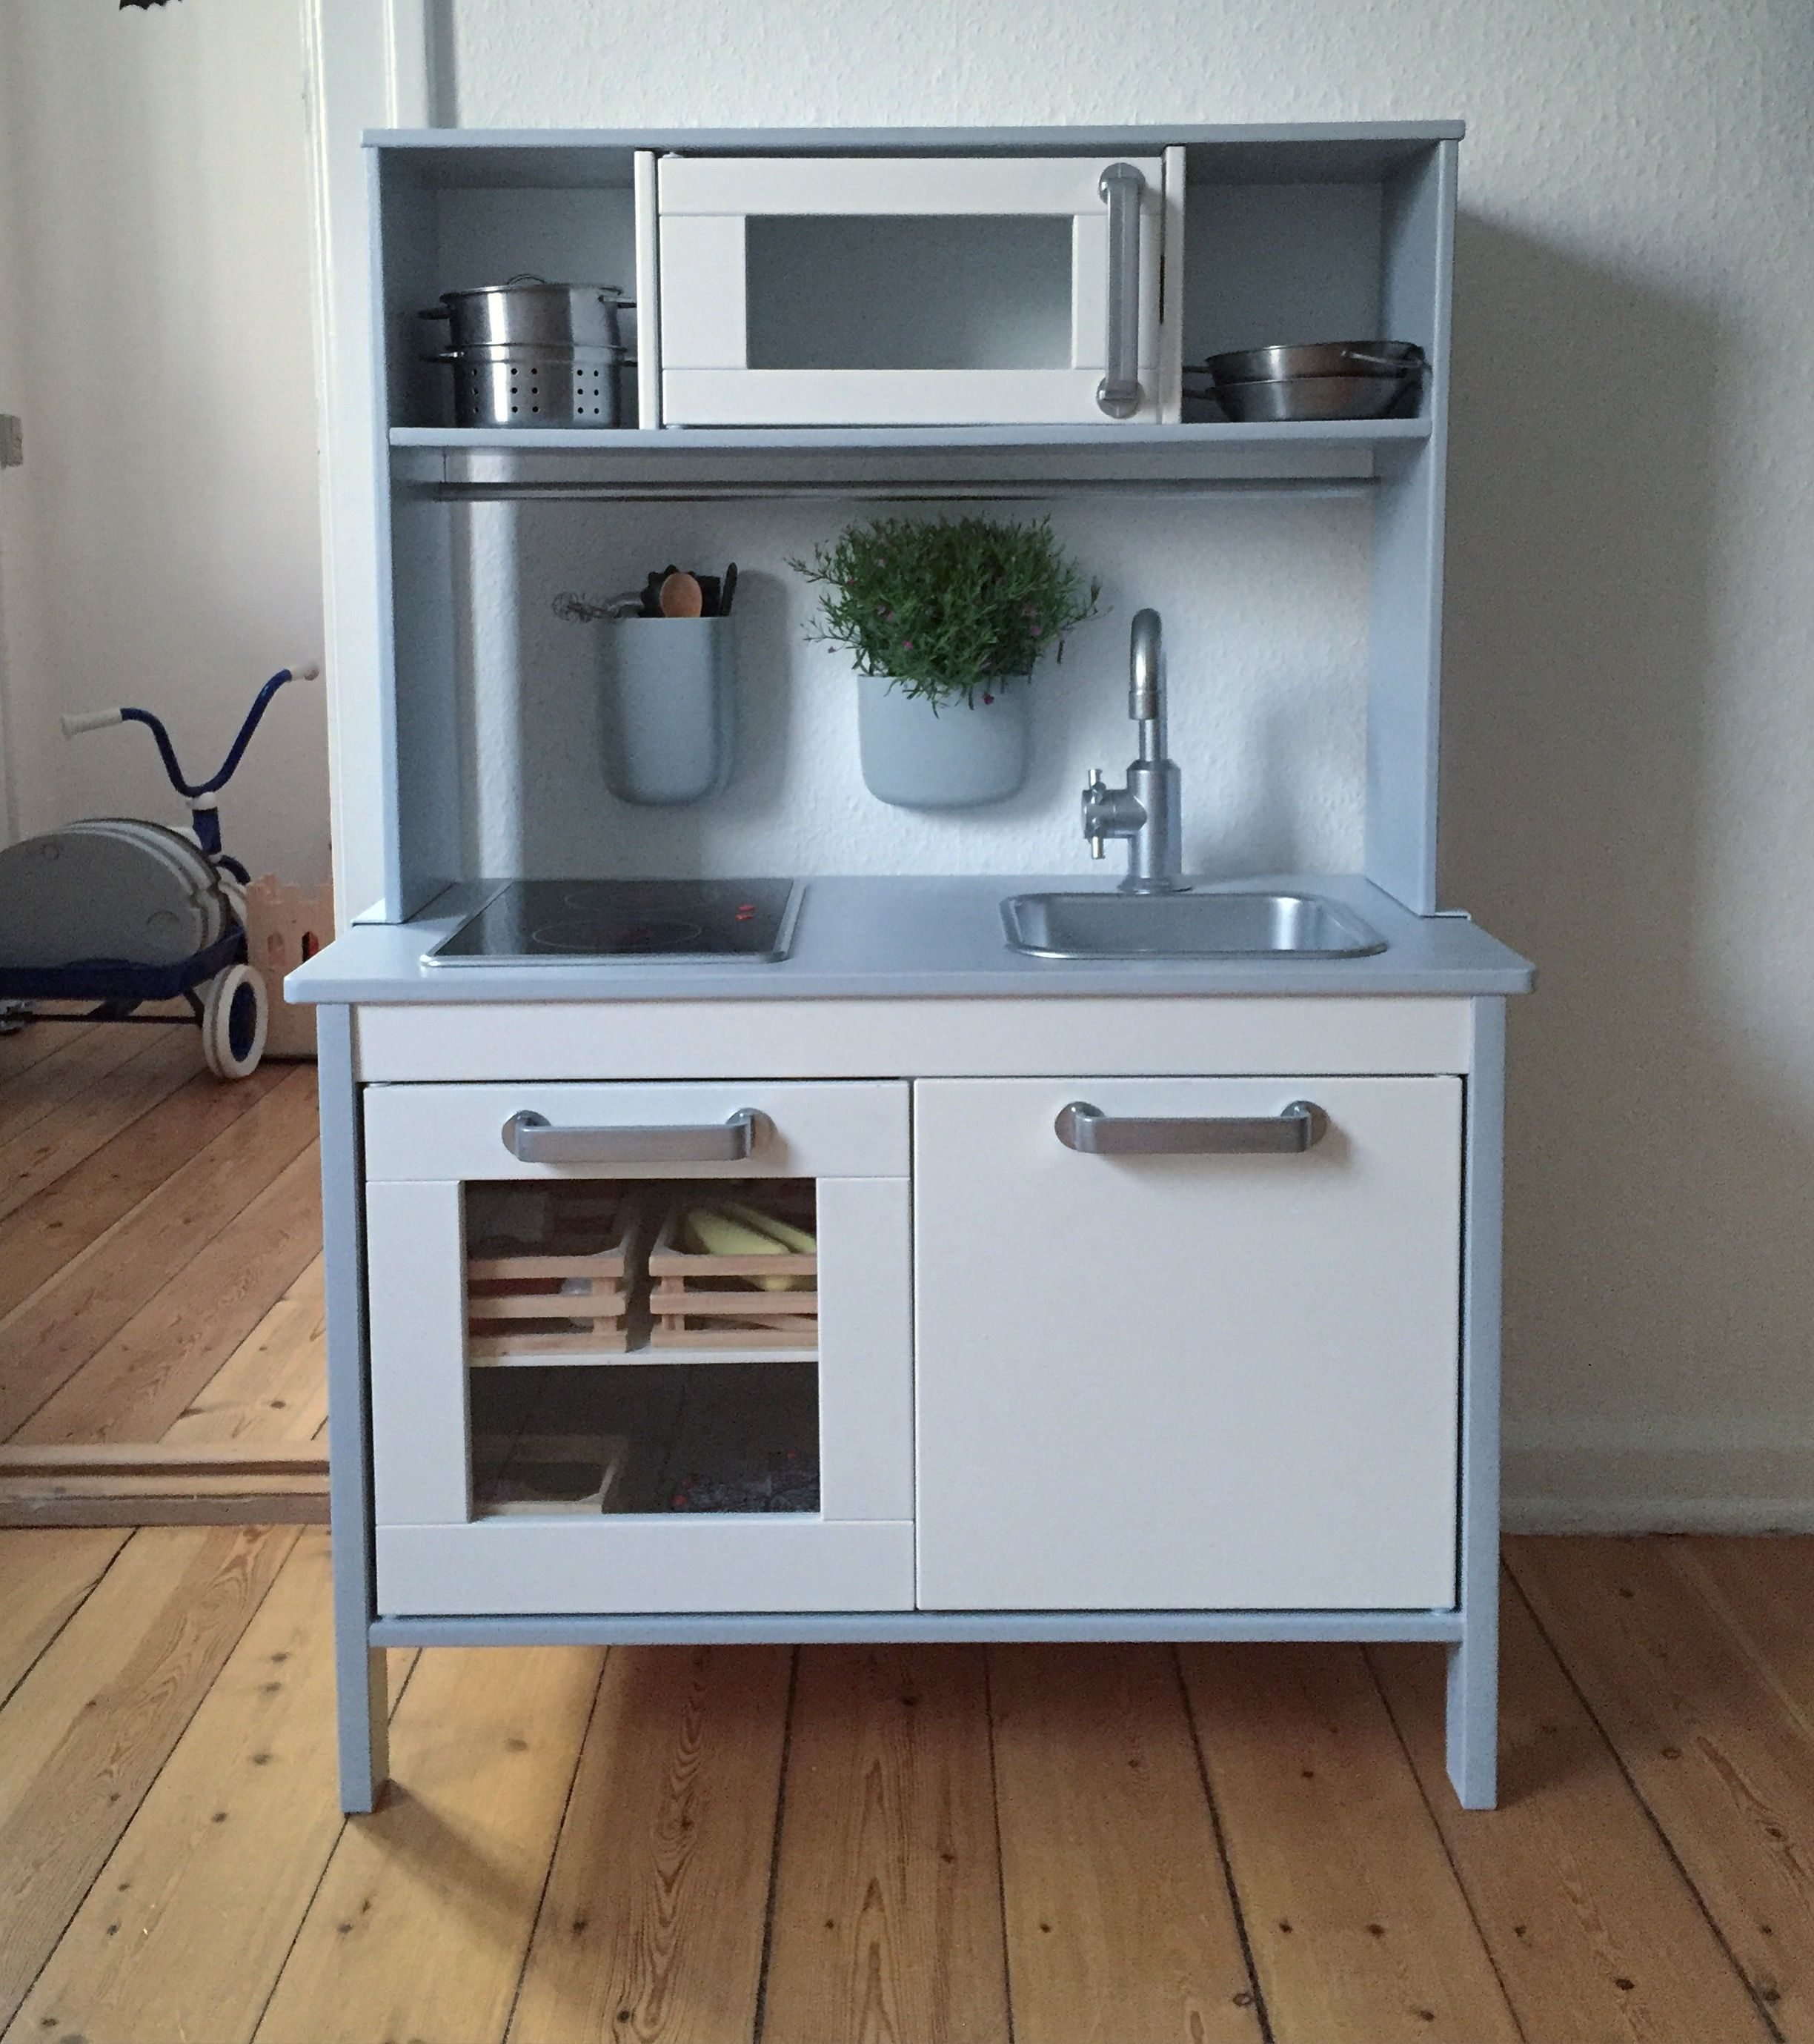 Ikea Hacks Küche Ikea Duktig Hack Children Room In 2019 Ikea Küche